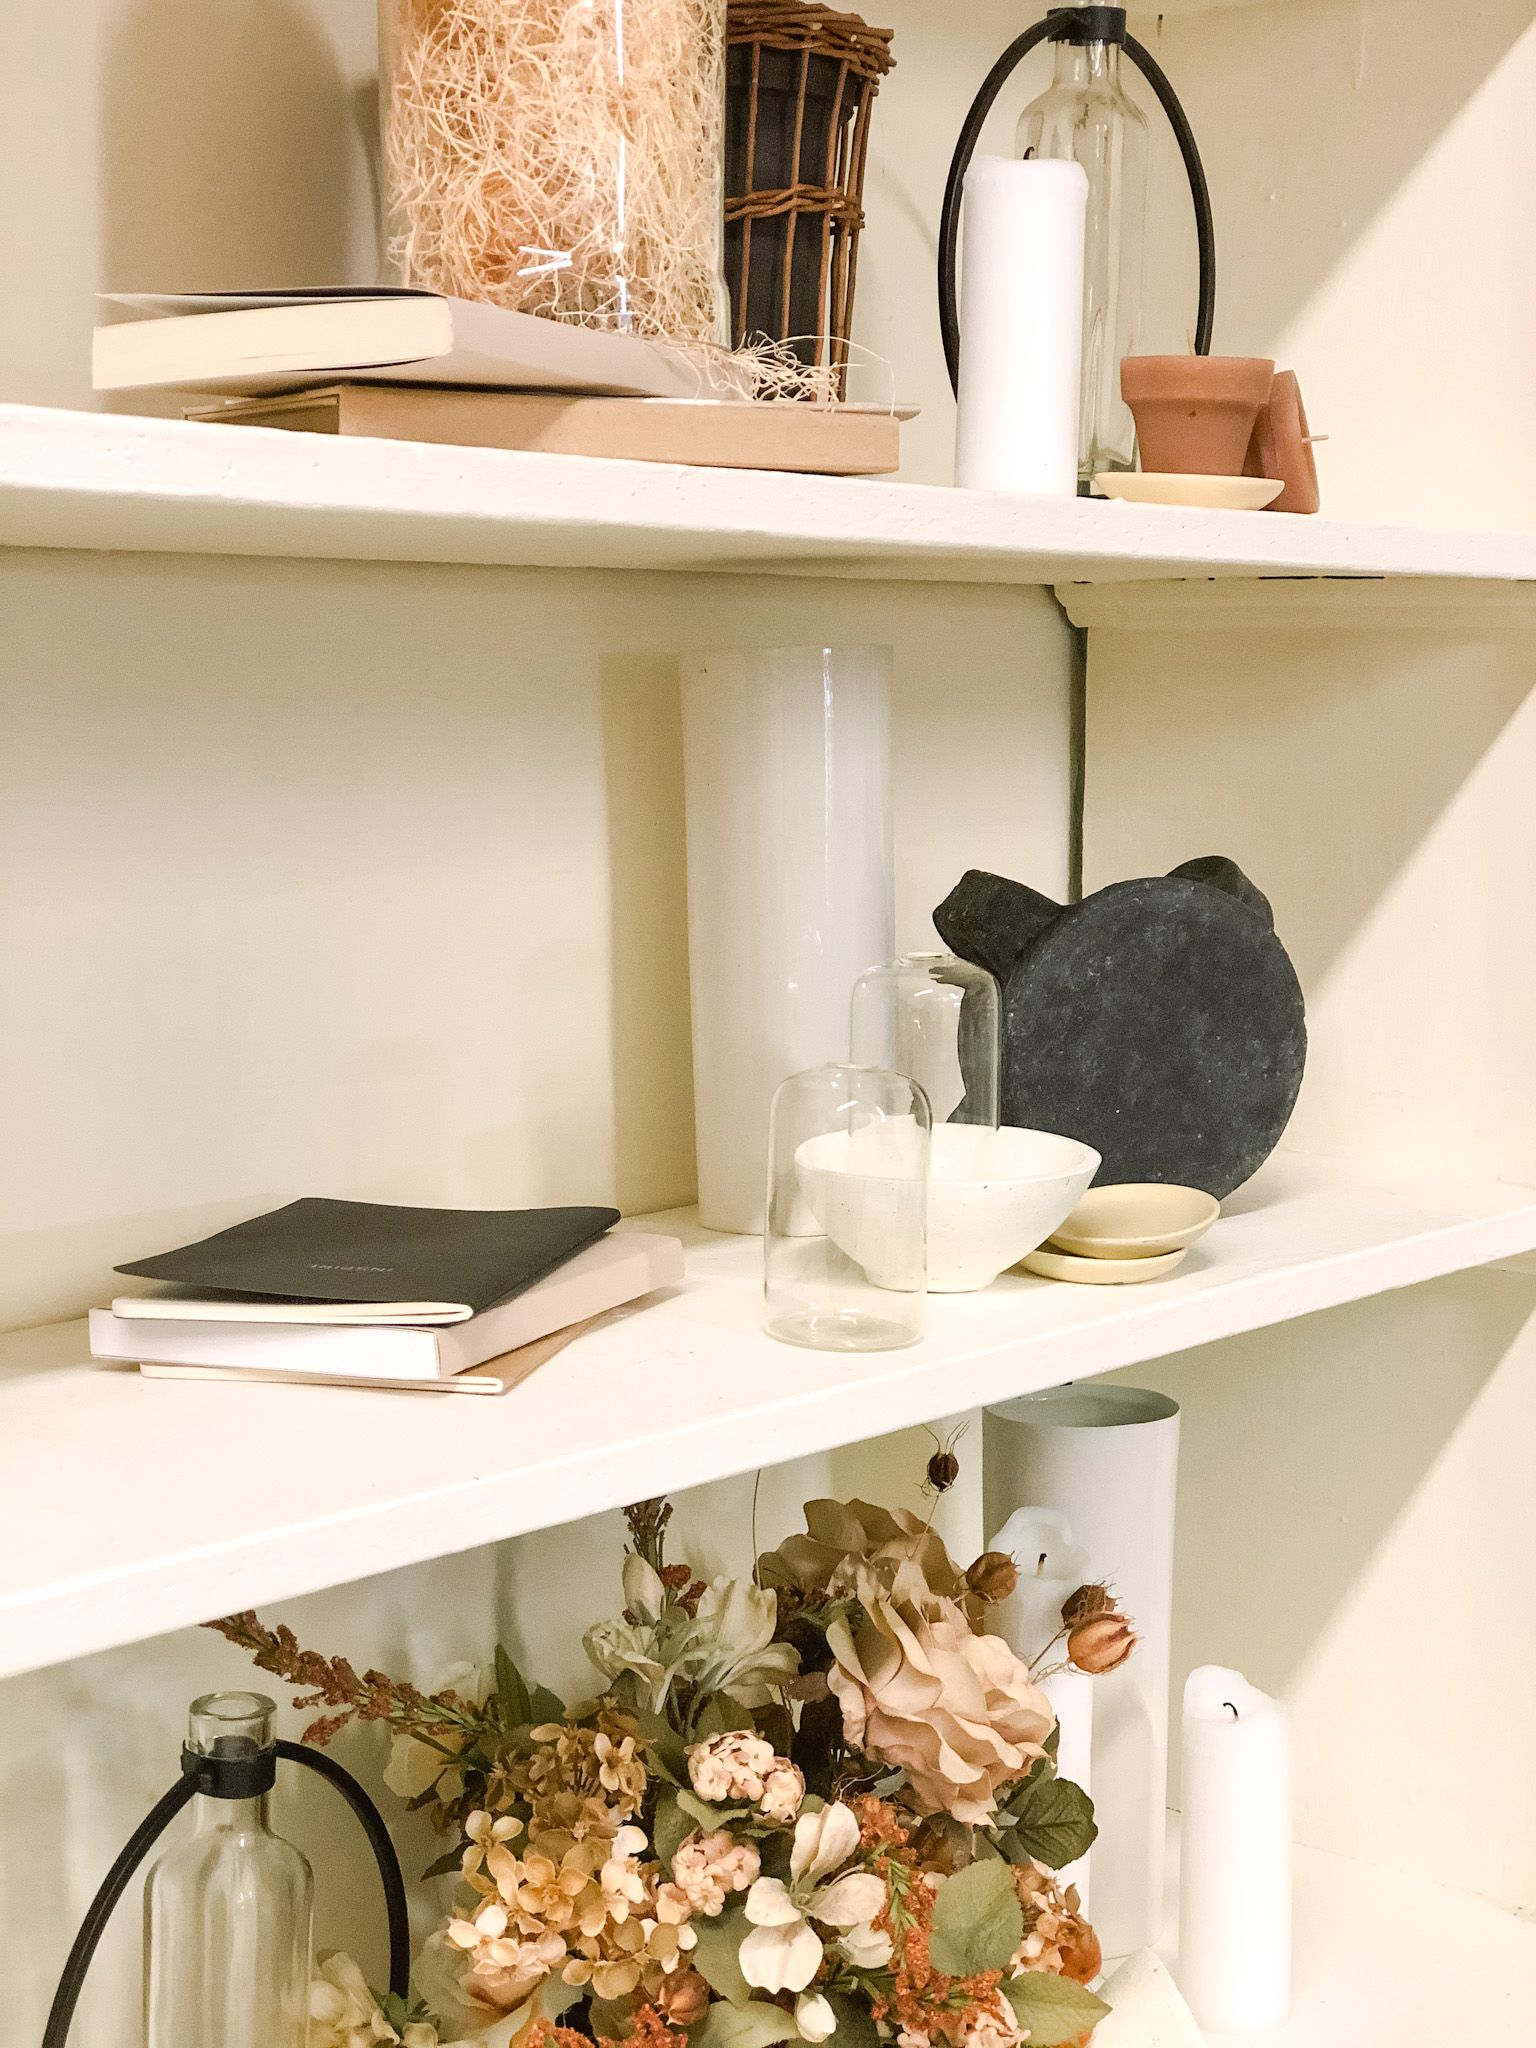 DIY home how to: shelf decorating ideas for my modern, minimal and neutral color everyday look. Cream, tan, white, black decorating, decor, styling for your living room or bedroom ideas. #shelfstyling #shelfdecor #shelfideas #shelfie #modernhomedesign